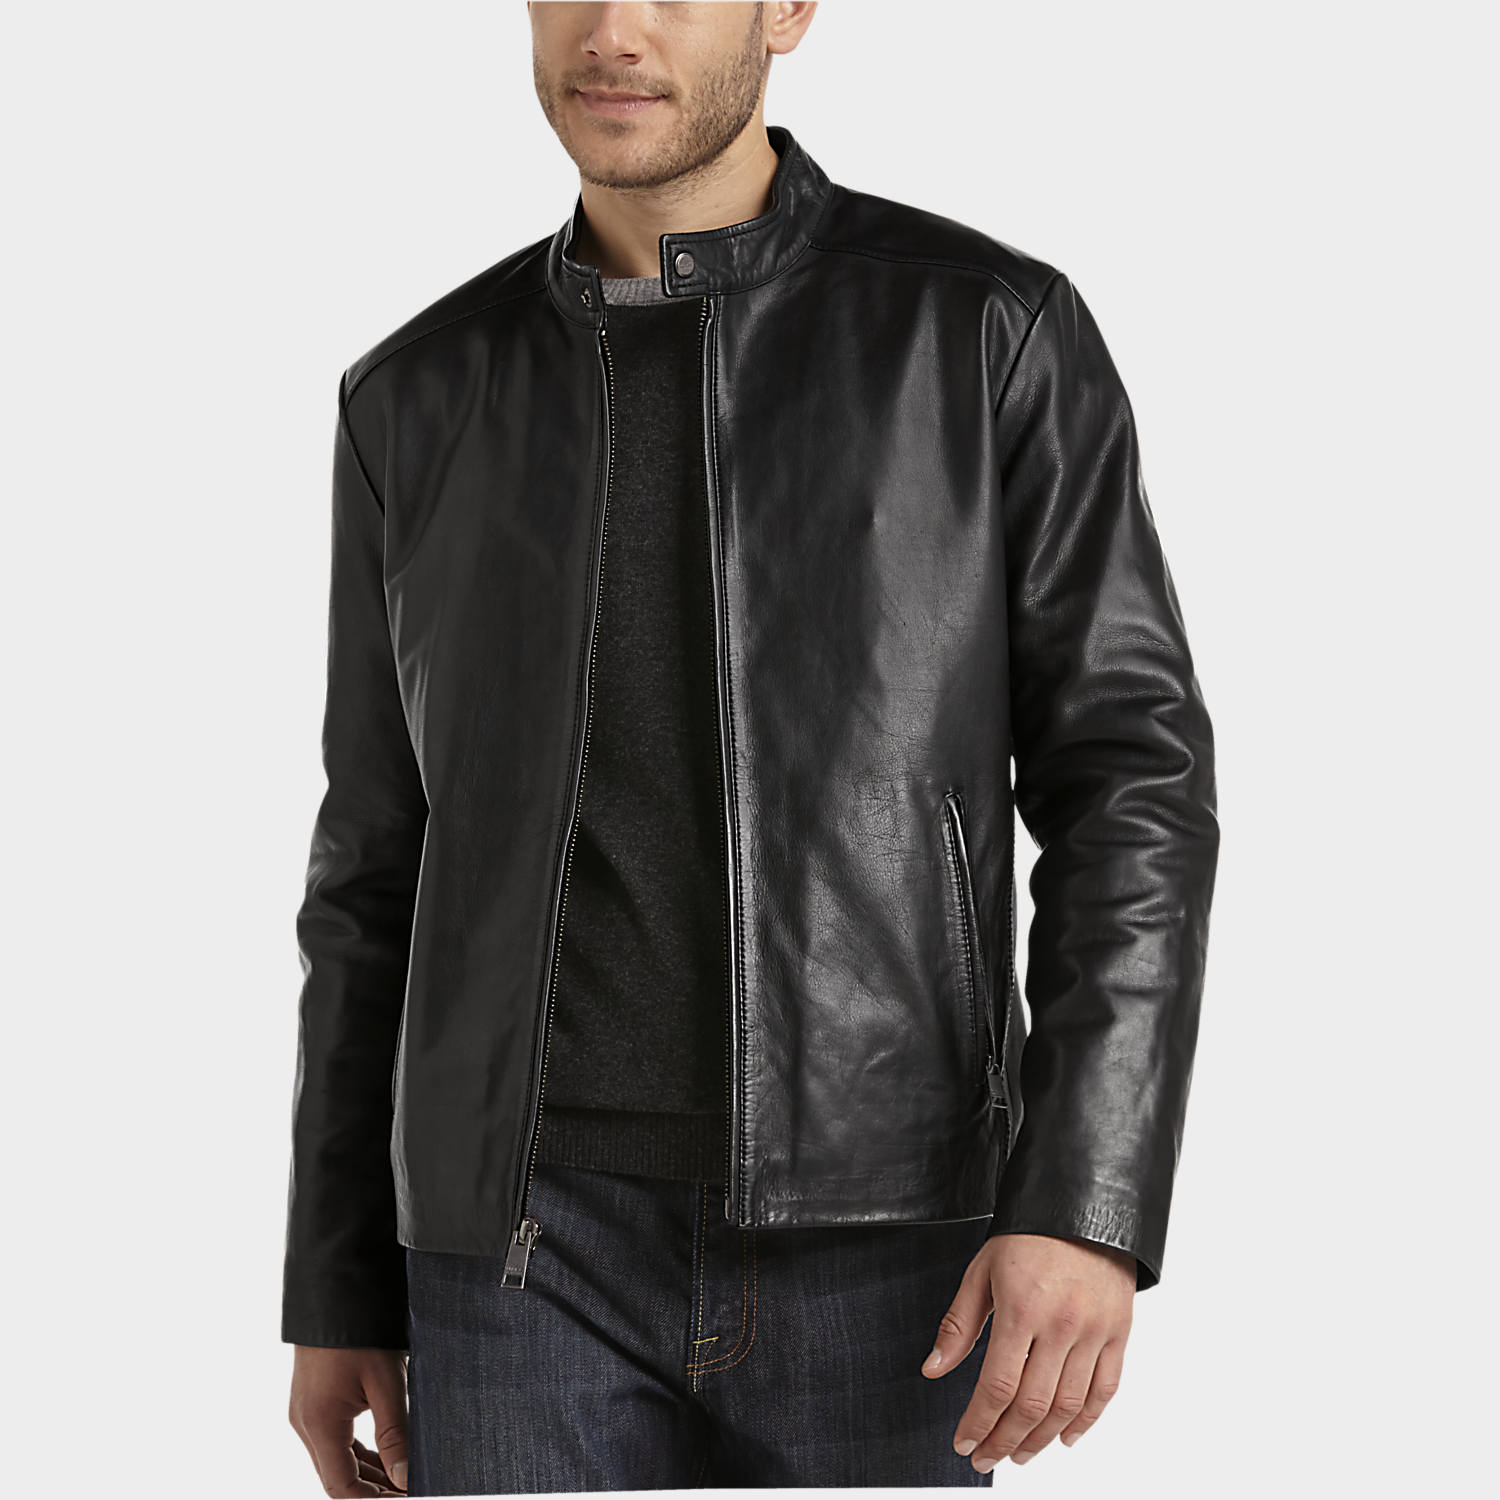 leather jackets for men marc new york black leather modern fit motorcycle jacket XPLGFHD